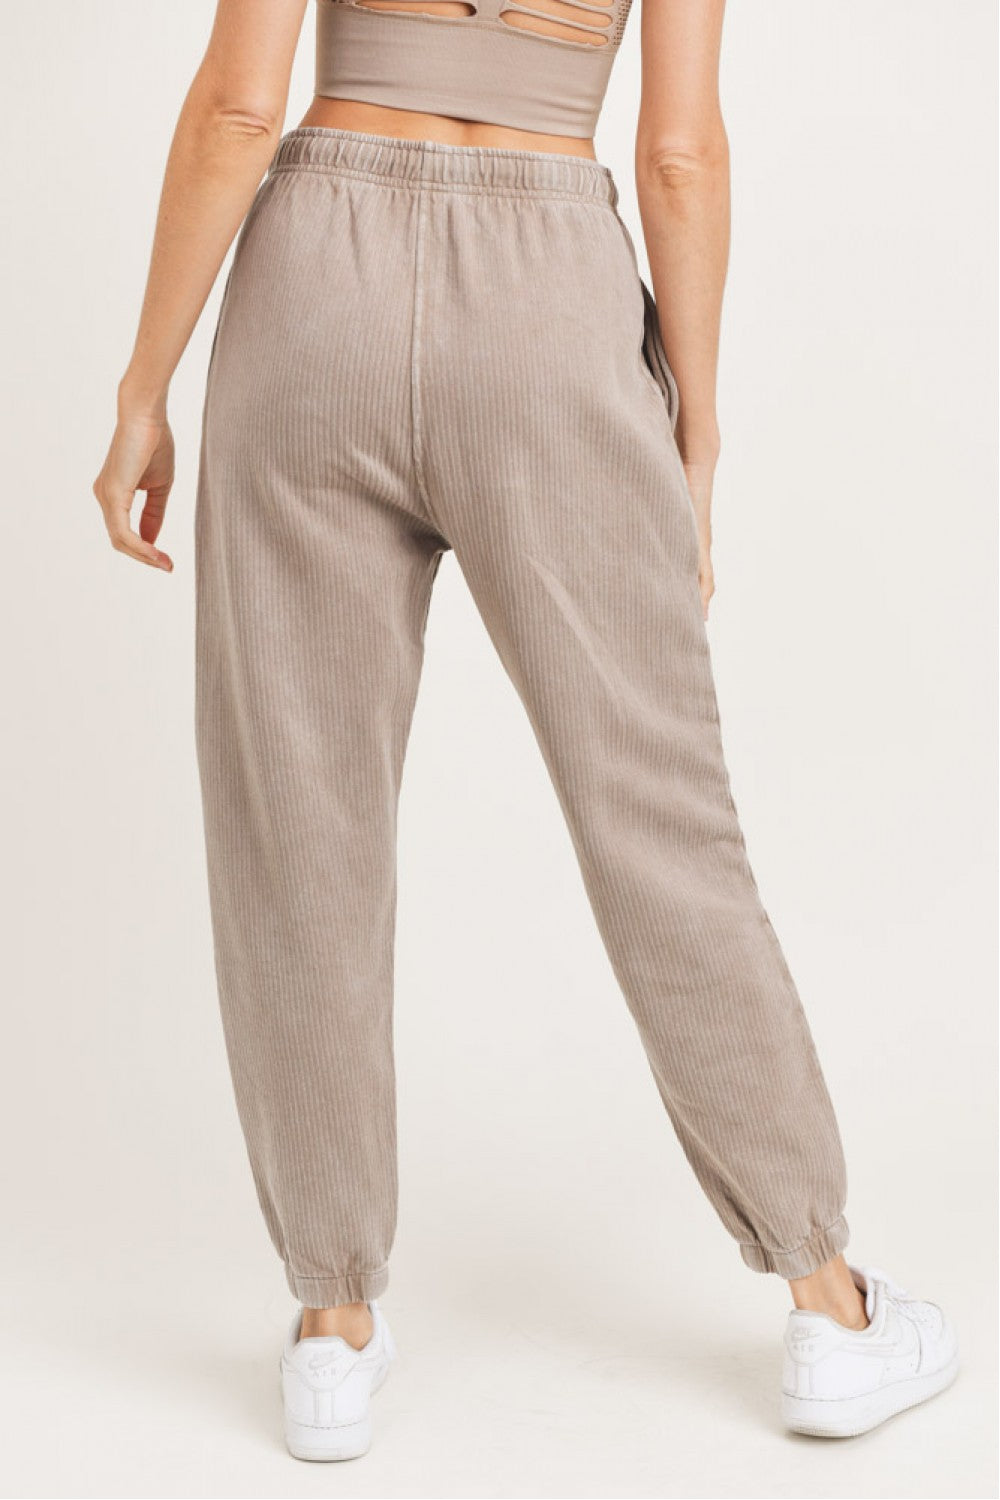 Mineral-Washed Ribbed Billow Cuffed Joggers (Mushroom)